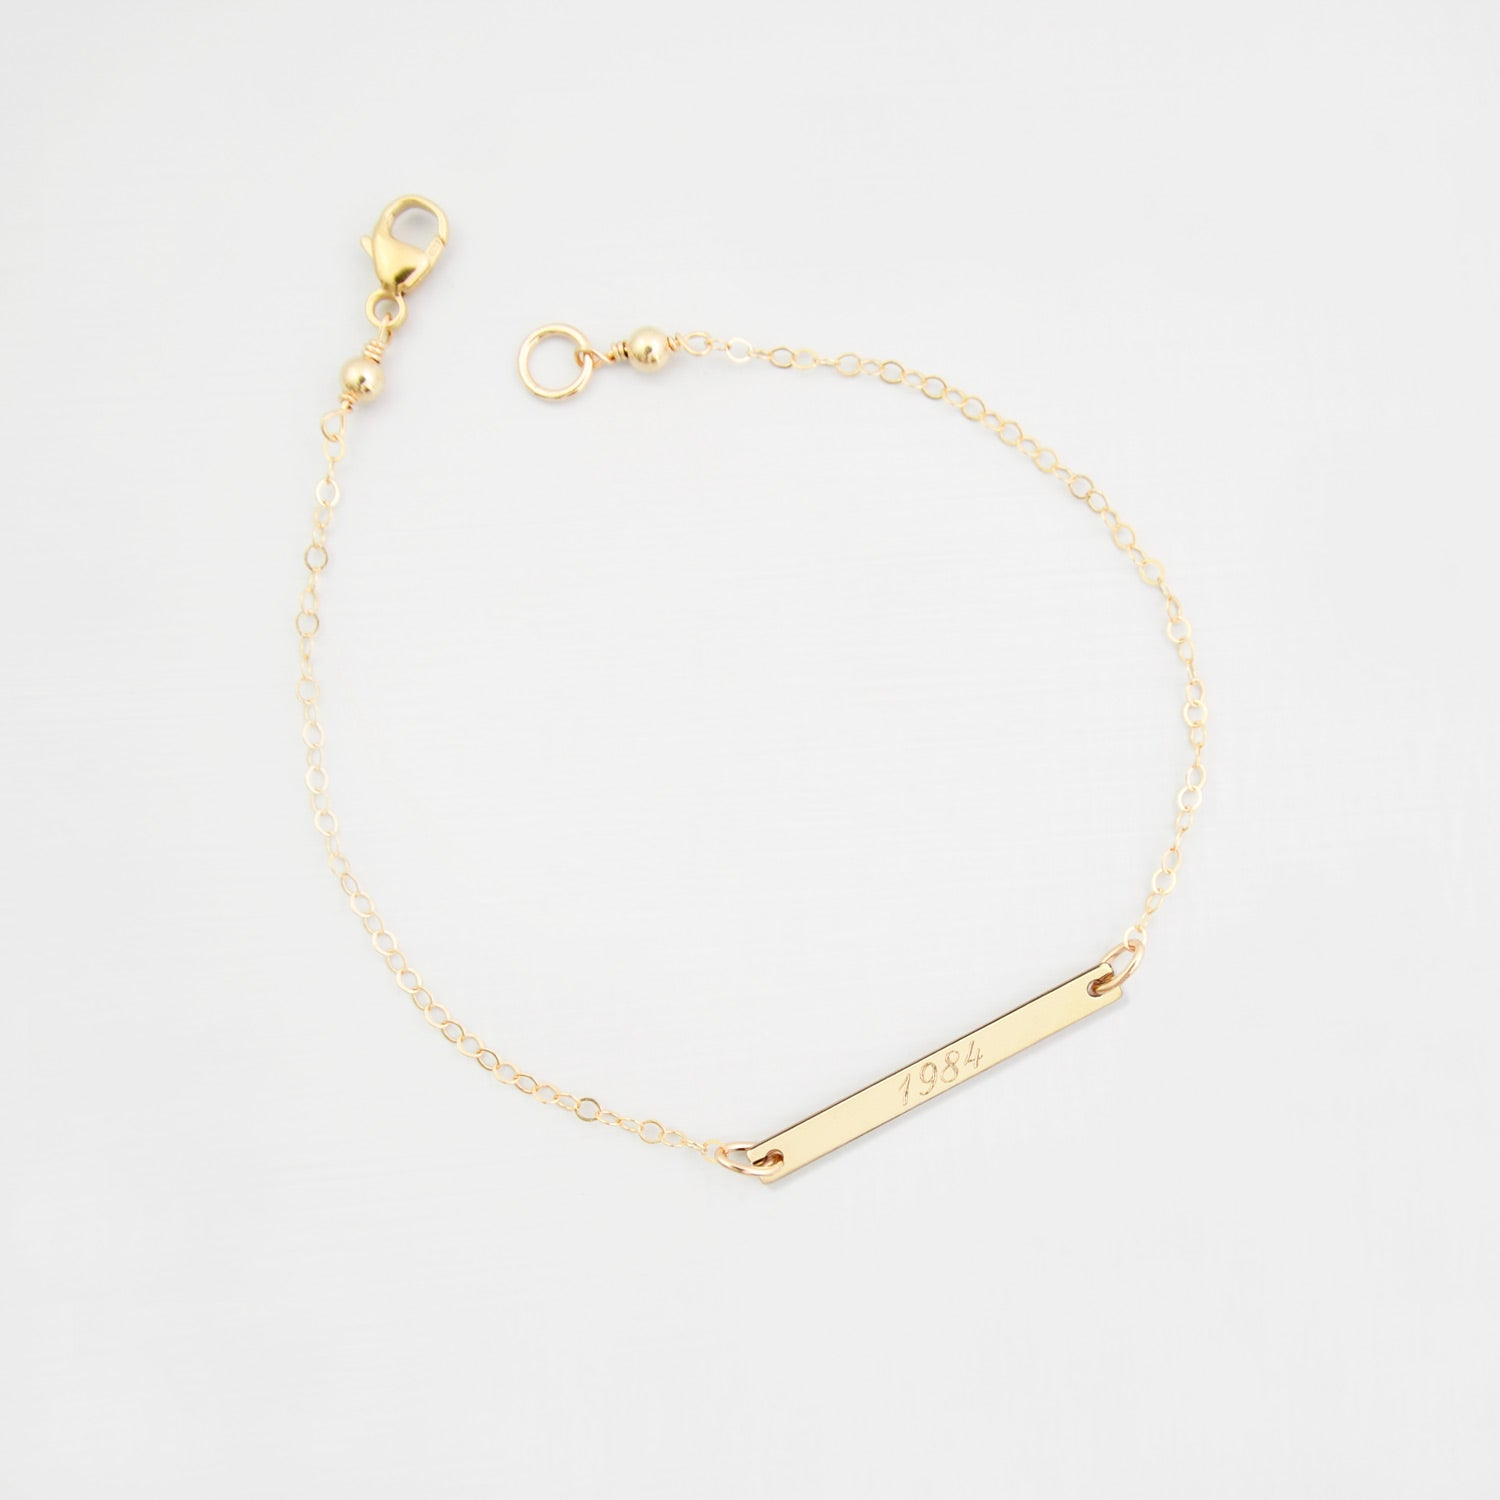 Personalised bar 'date' bracelet 'Anushka'